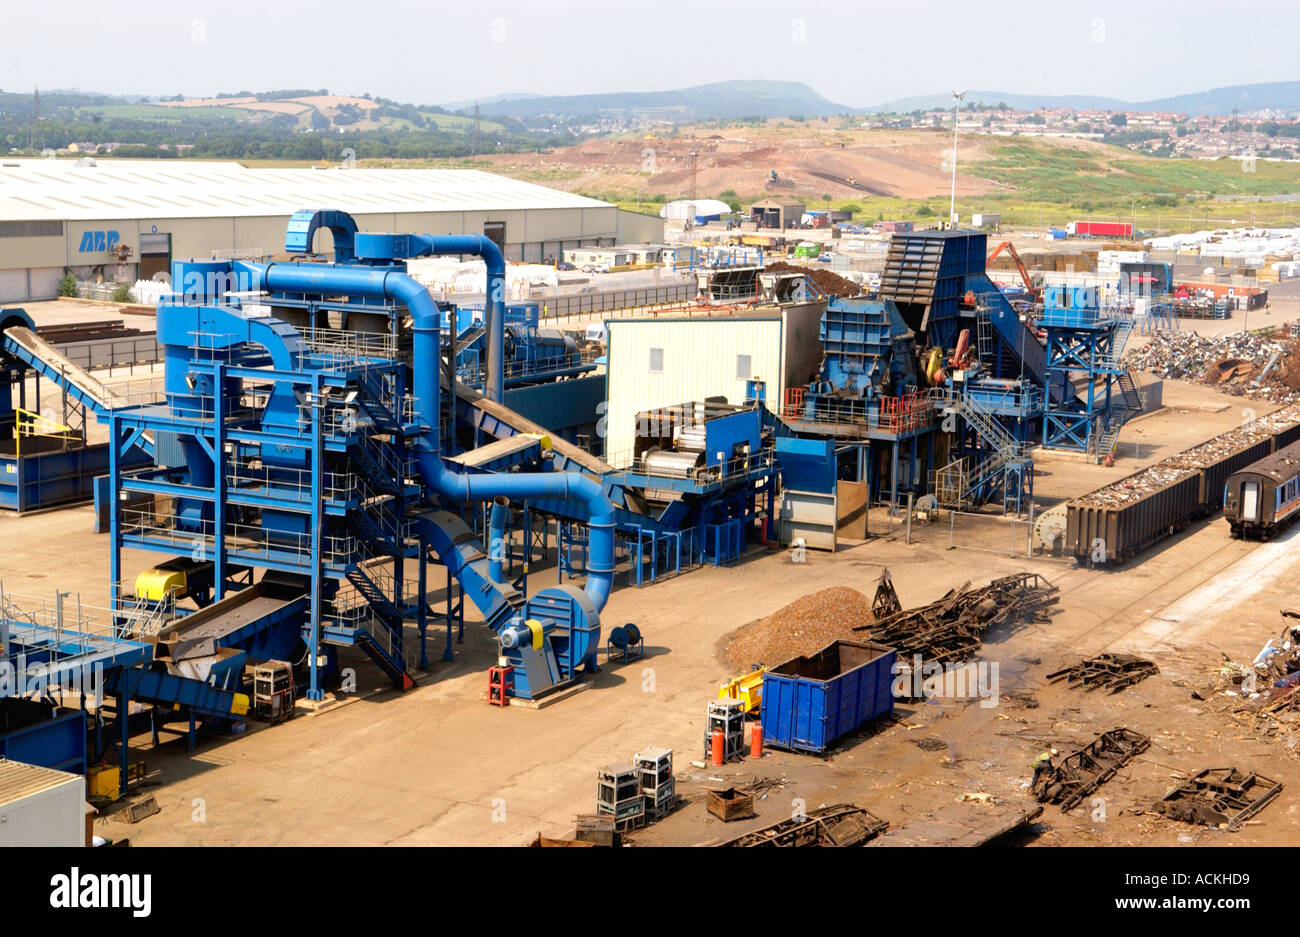 Stock Photo Metal Recycling Yard With The Worlds Largest Shredder At Simsmetal 4302296 on scrap metal shredding